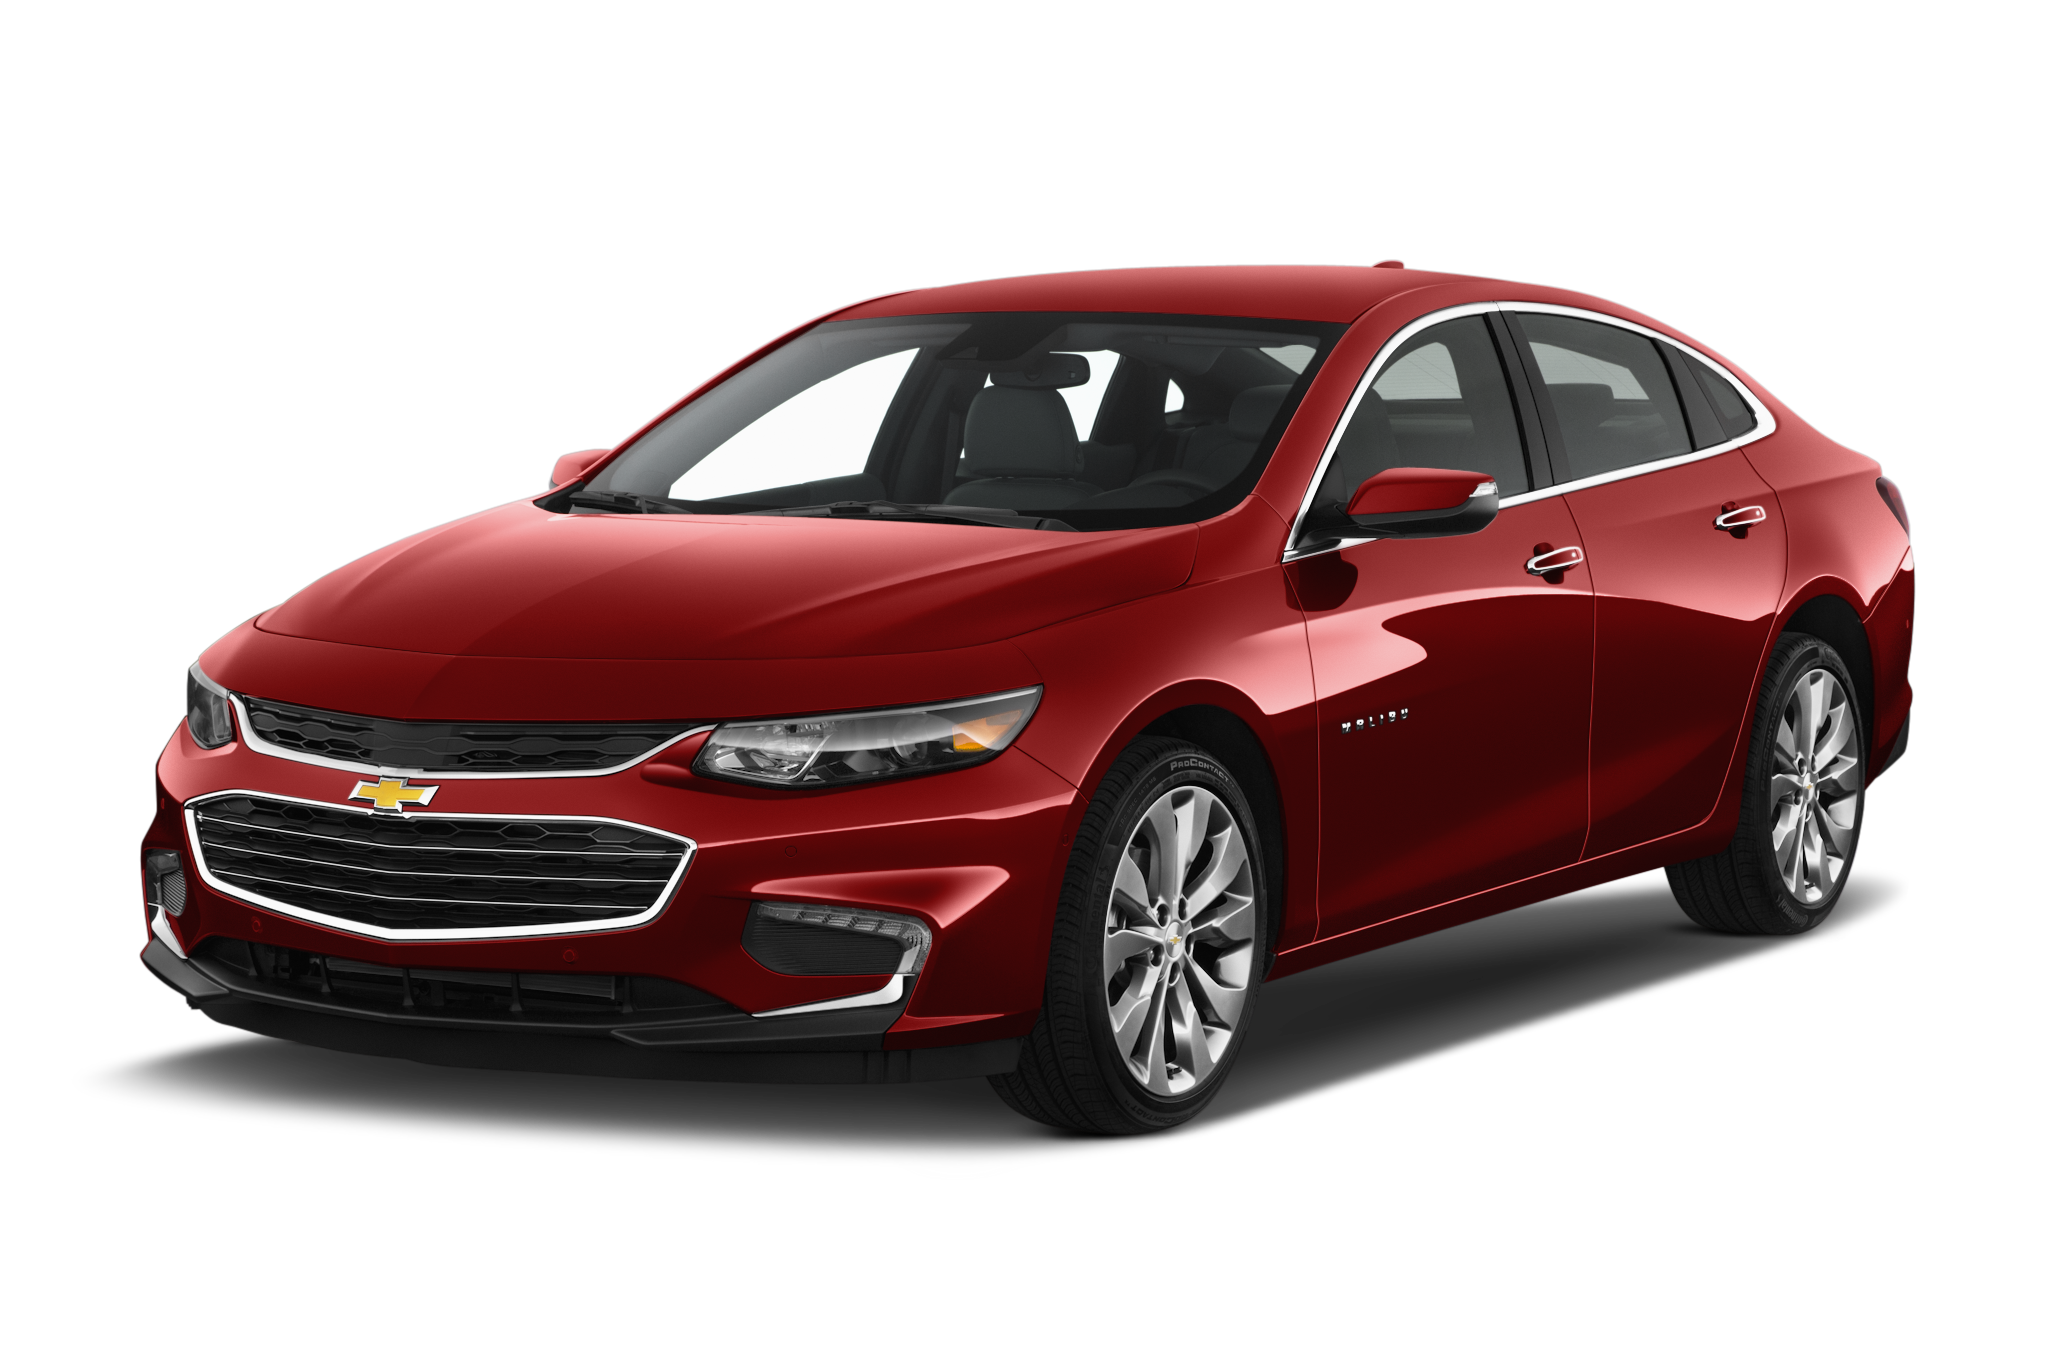 2016 Chevrolet Malibu Hybrid Returns 46 MPG | Automobile ...